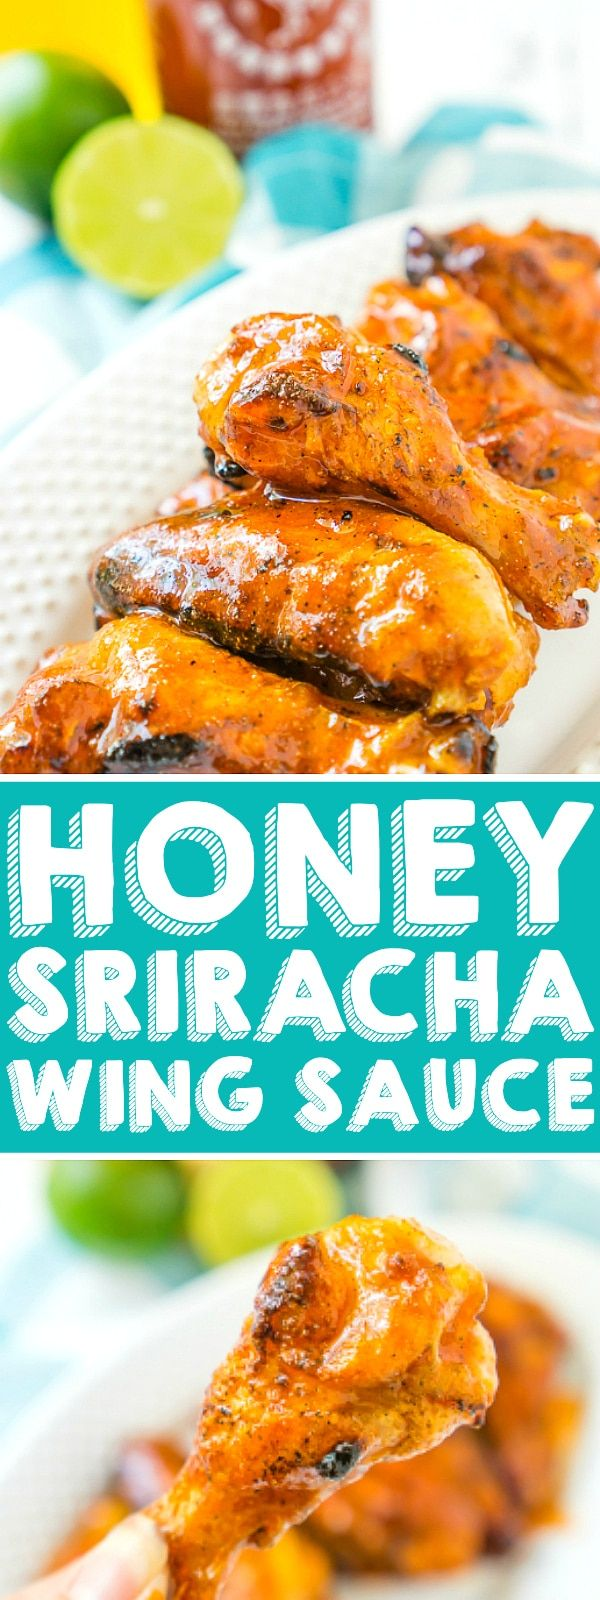 Honey Sriracha Chicken Wings, Honey Sriracha Sauce, Spicy Wings, Sweet And Spicy Chicken, Grilled Chicken Wings, Sweet And Spicy Sauce, Hot Wing Sauces, Chicken Wing Sauces, Chicken Wing Recipes